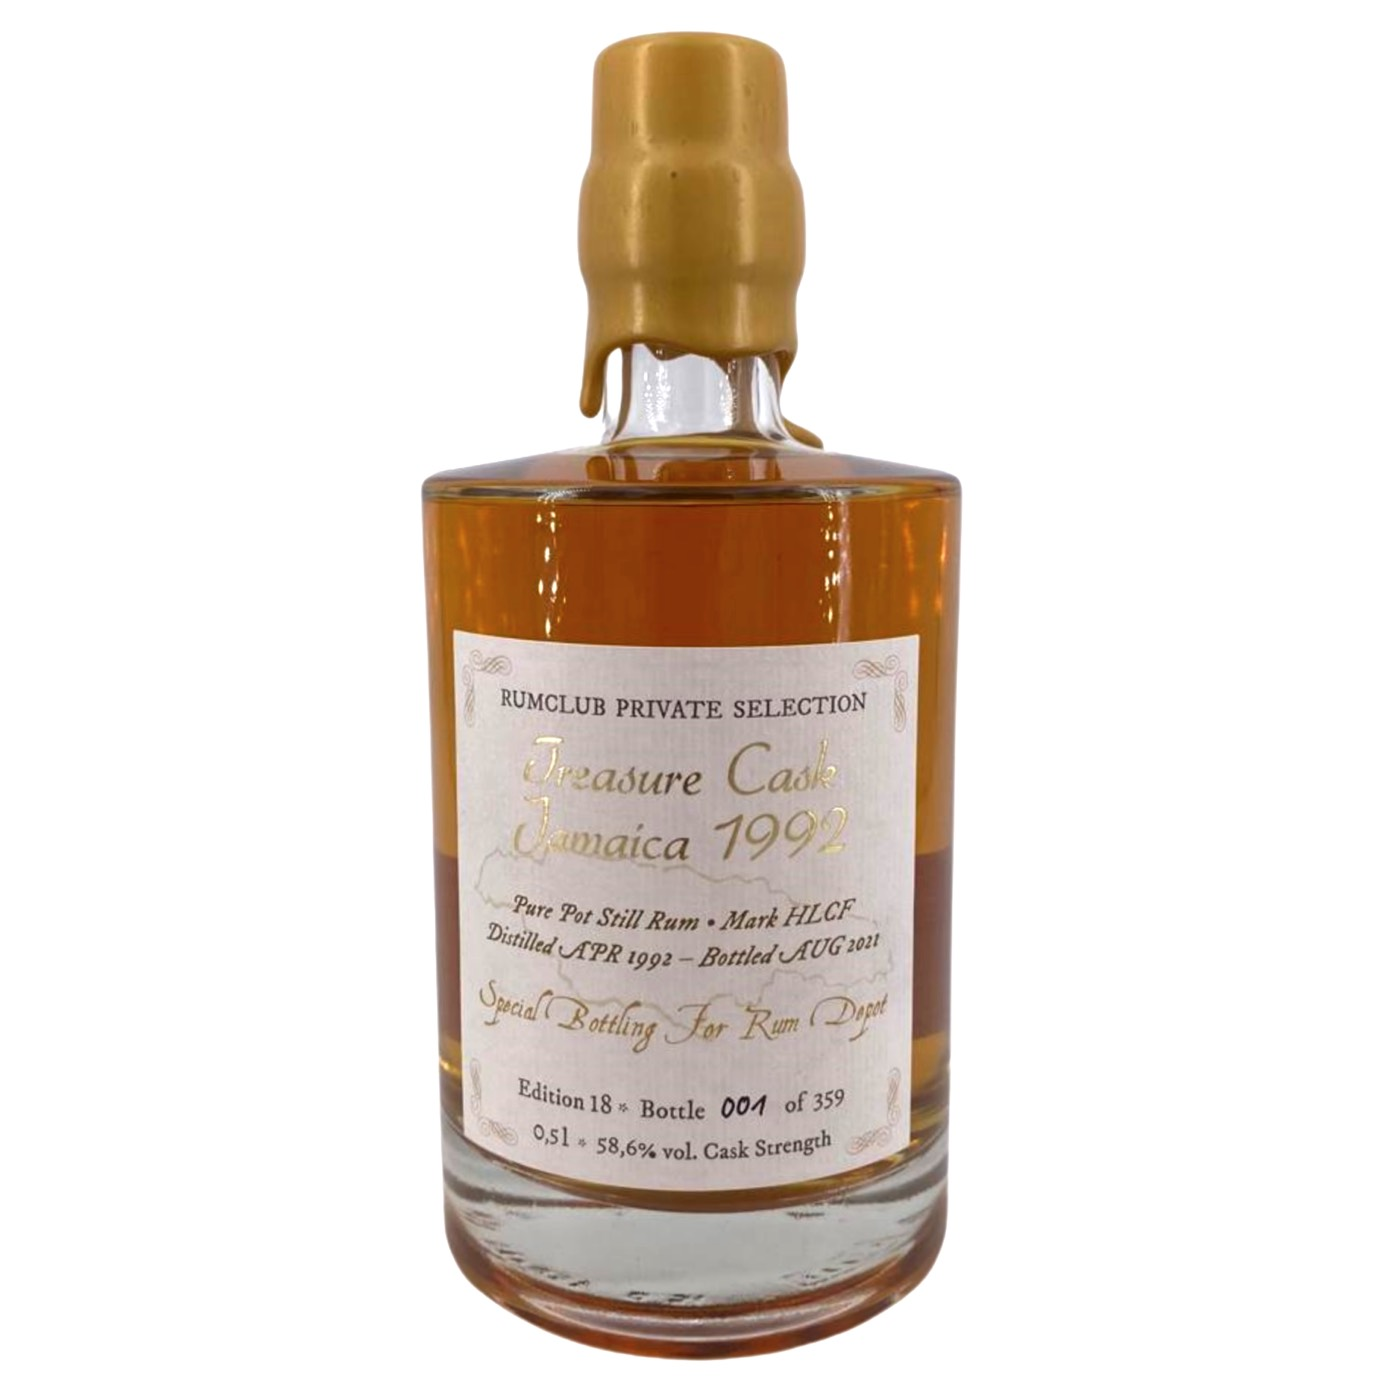 Bottle image of Rumclub Private Selection Ed. 18 Treasure Cask Jamaica HLCF